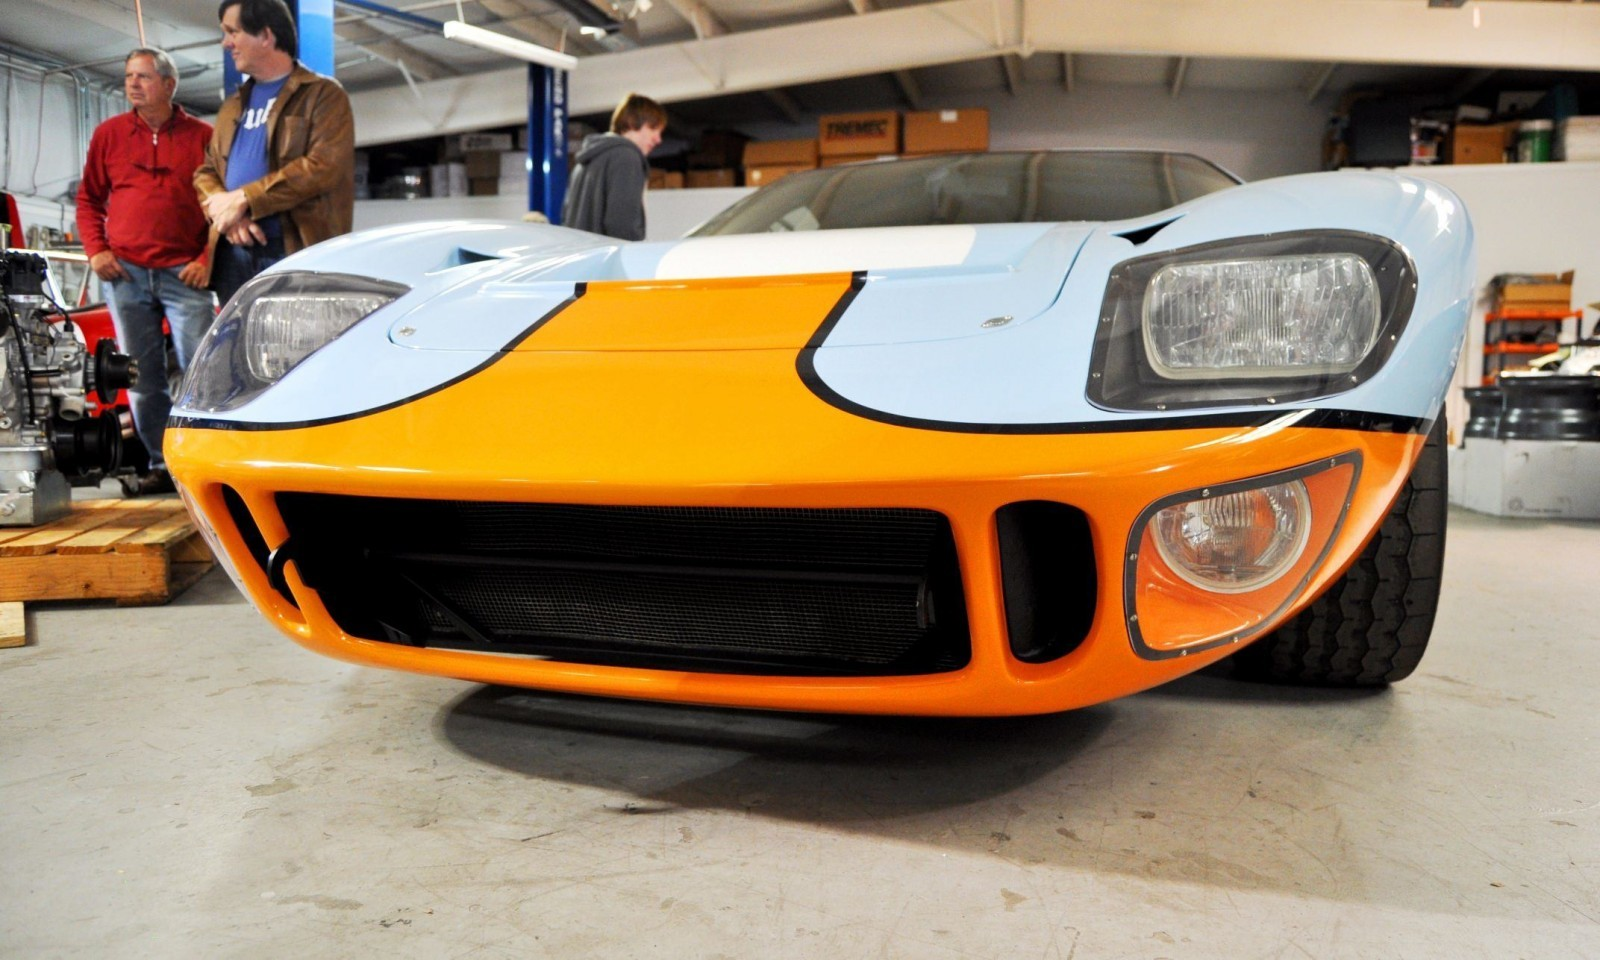 2014 Superformance GT40 Mark I - MEGA Photo Shoot and Ride-Along Videos 4